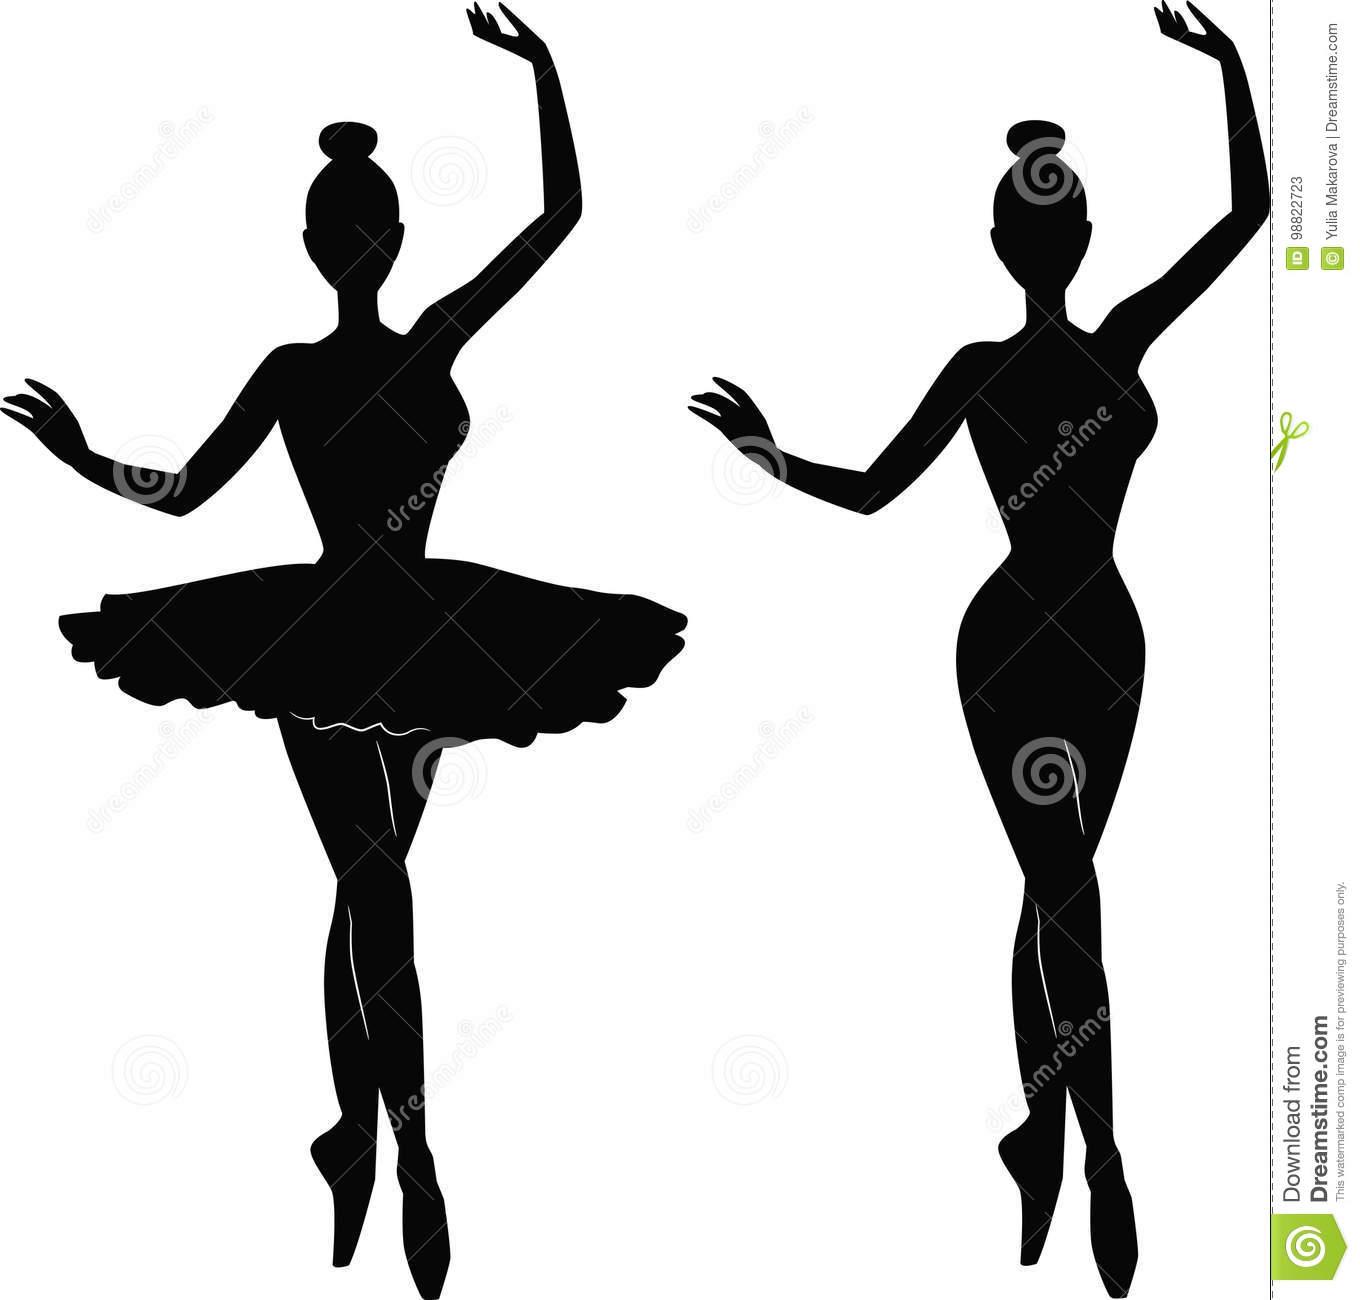 Woman Ballet Dancer Silhouette Stock Vector Illustration Of Dance Moves Diagram